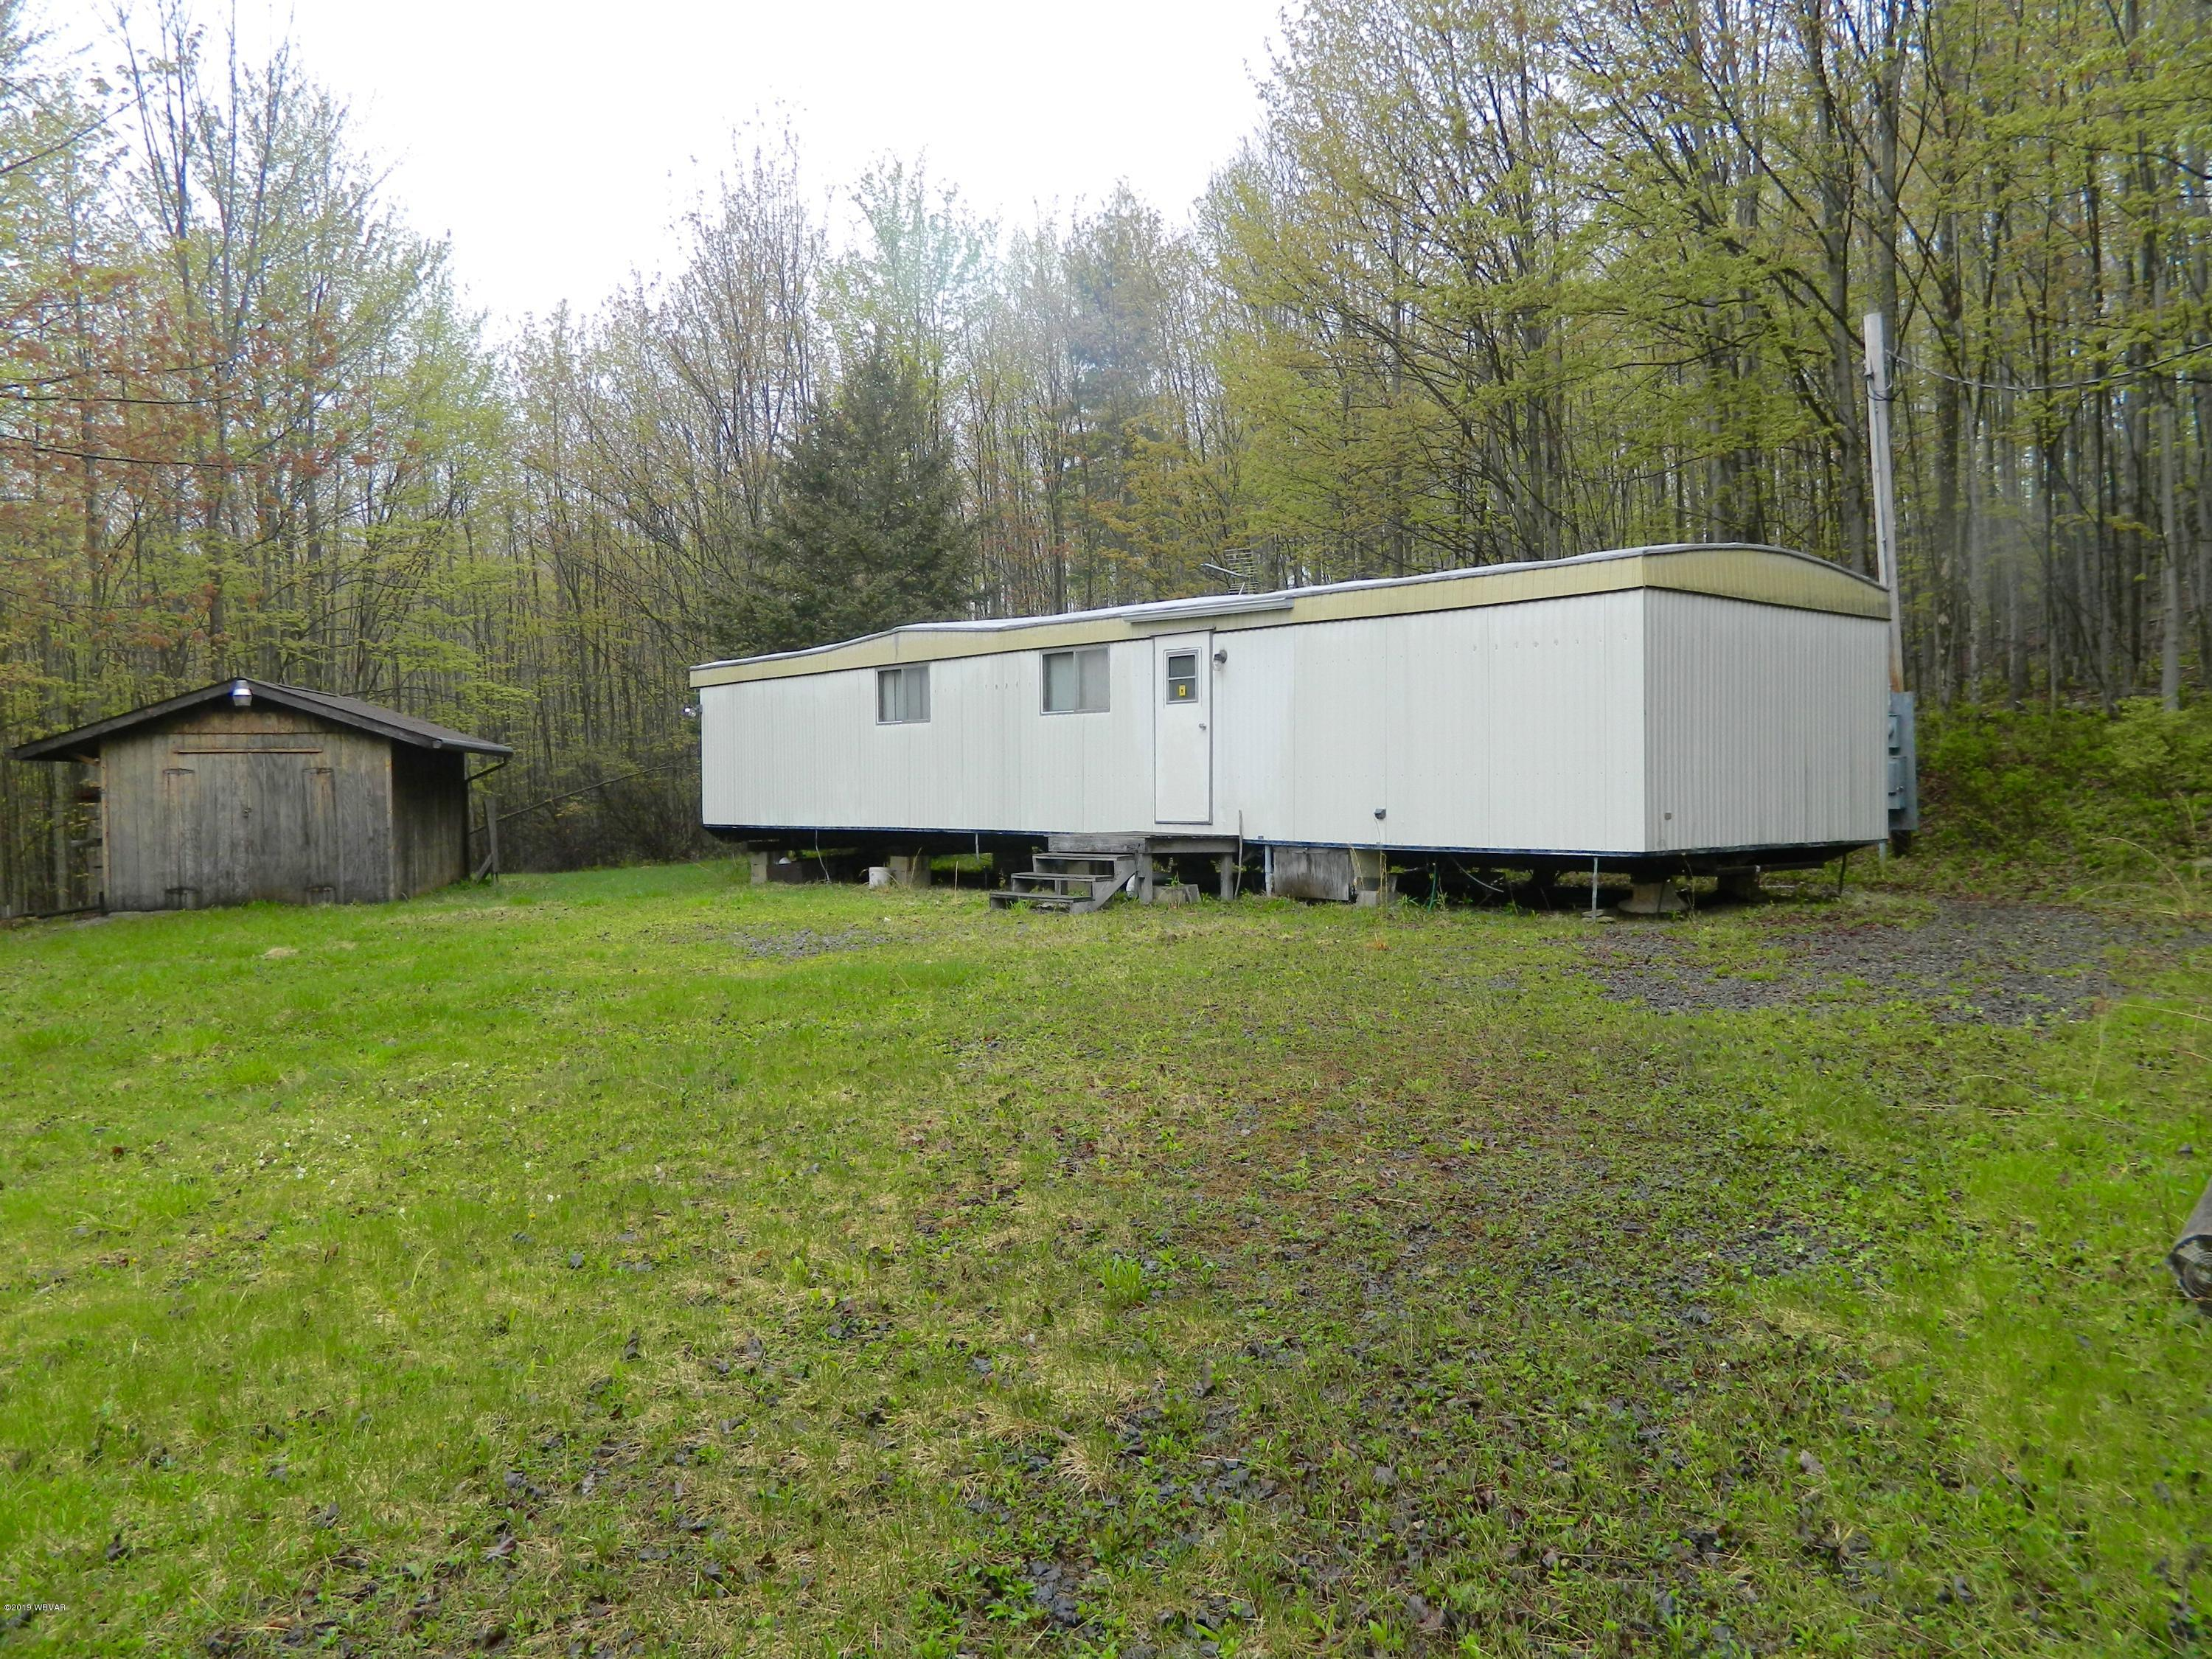 755 OLD ROUTE 220 HIGHWAY,Laporte,PA 18626,2 Bedrooms Bedrooms,Cabin/vacation home,OLD ROUTE 220,WB-87348